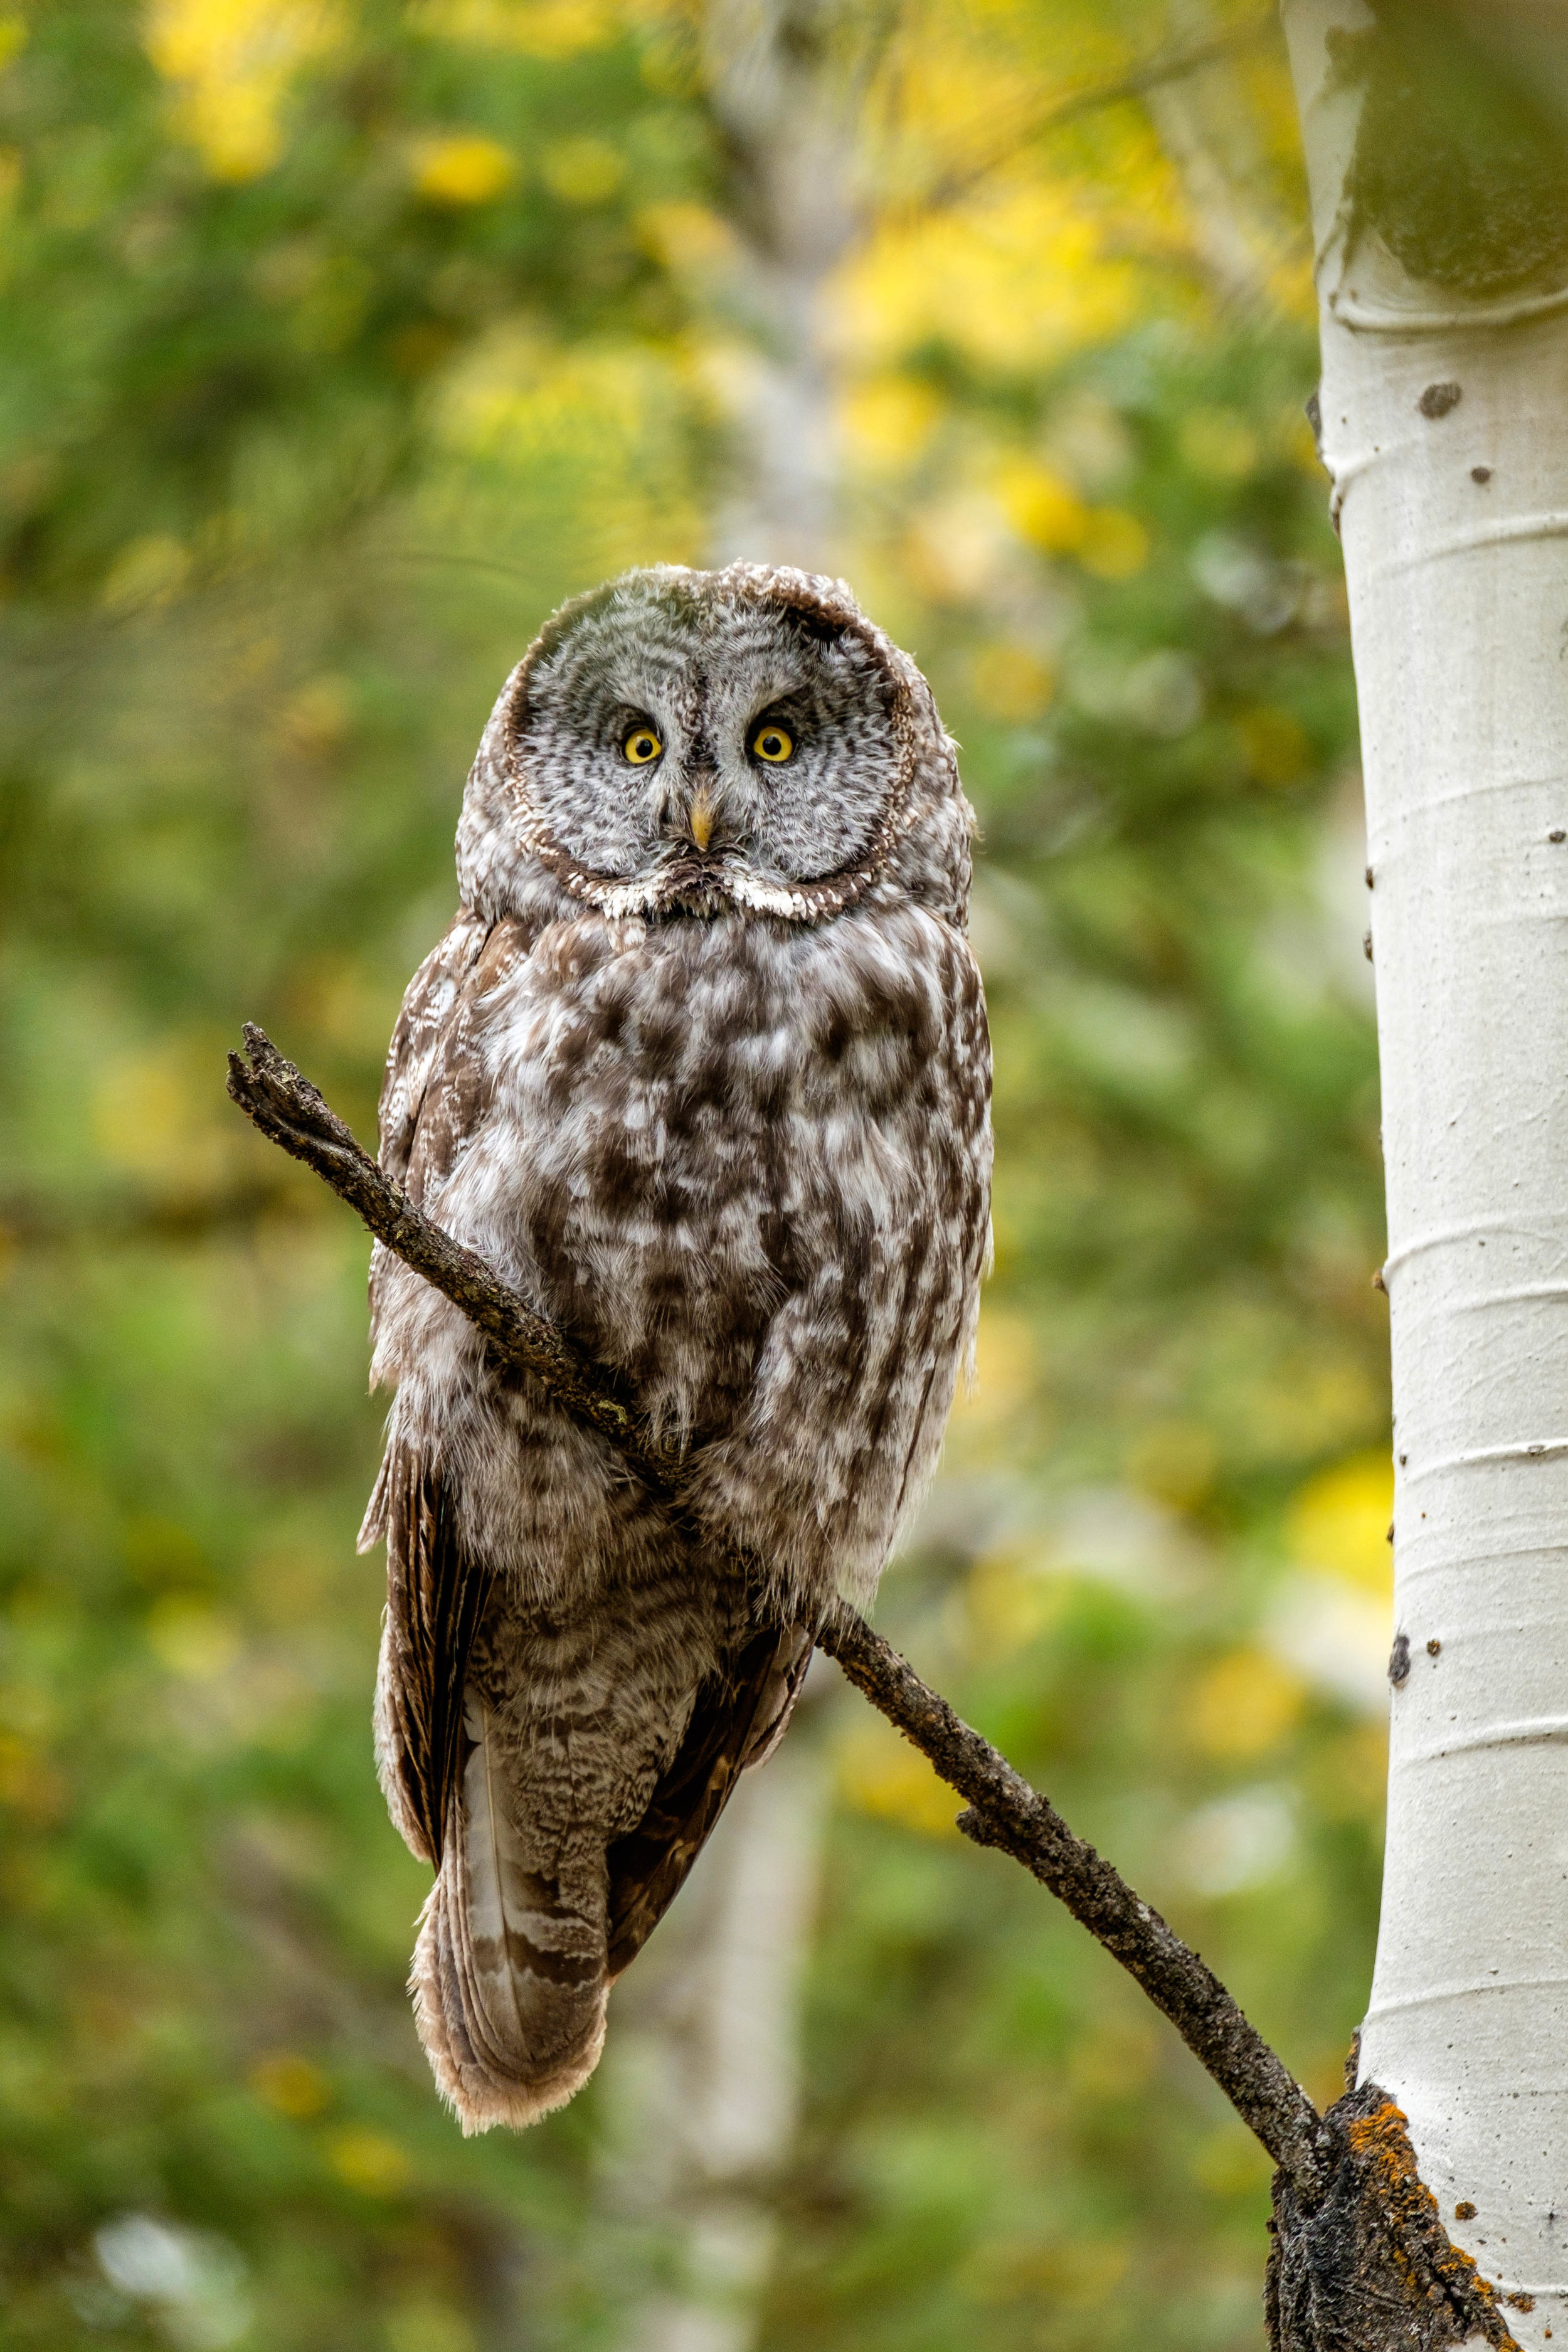 Witnessing a Great Gray Owl close-up was one of the highlights of our time in Grand Tetons.